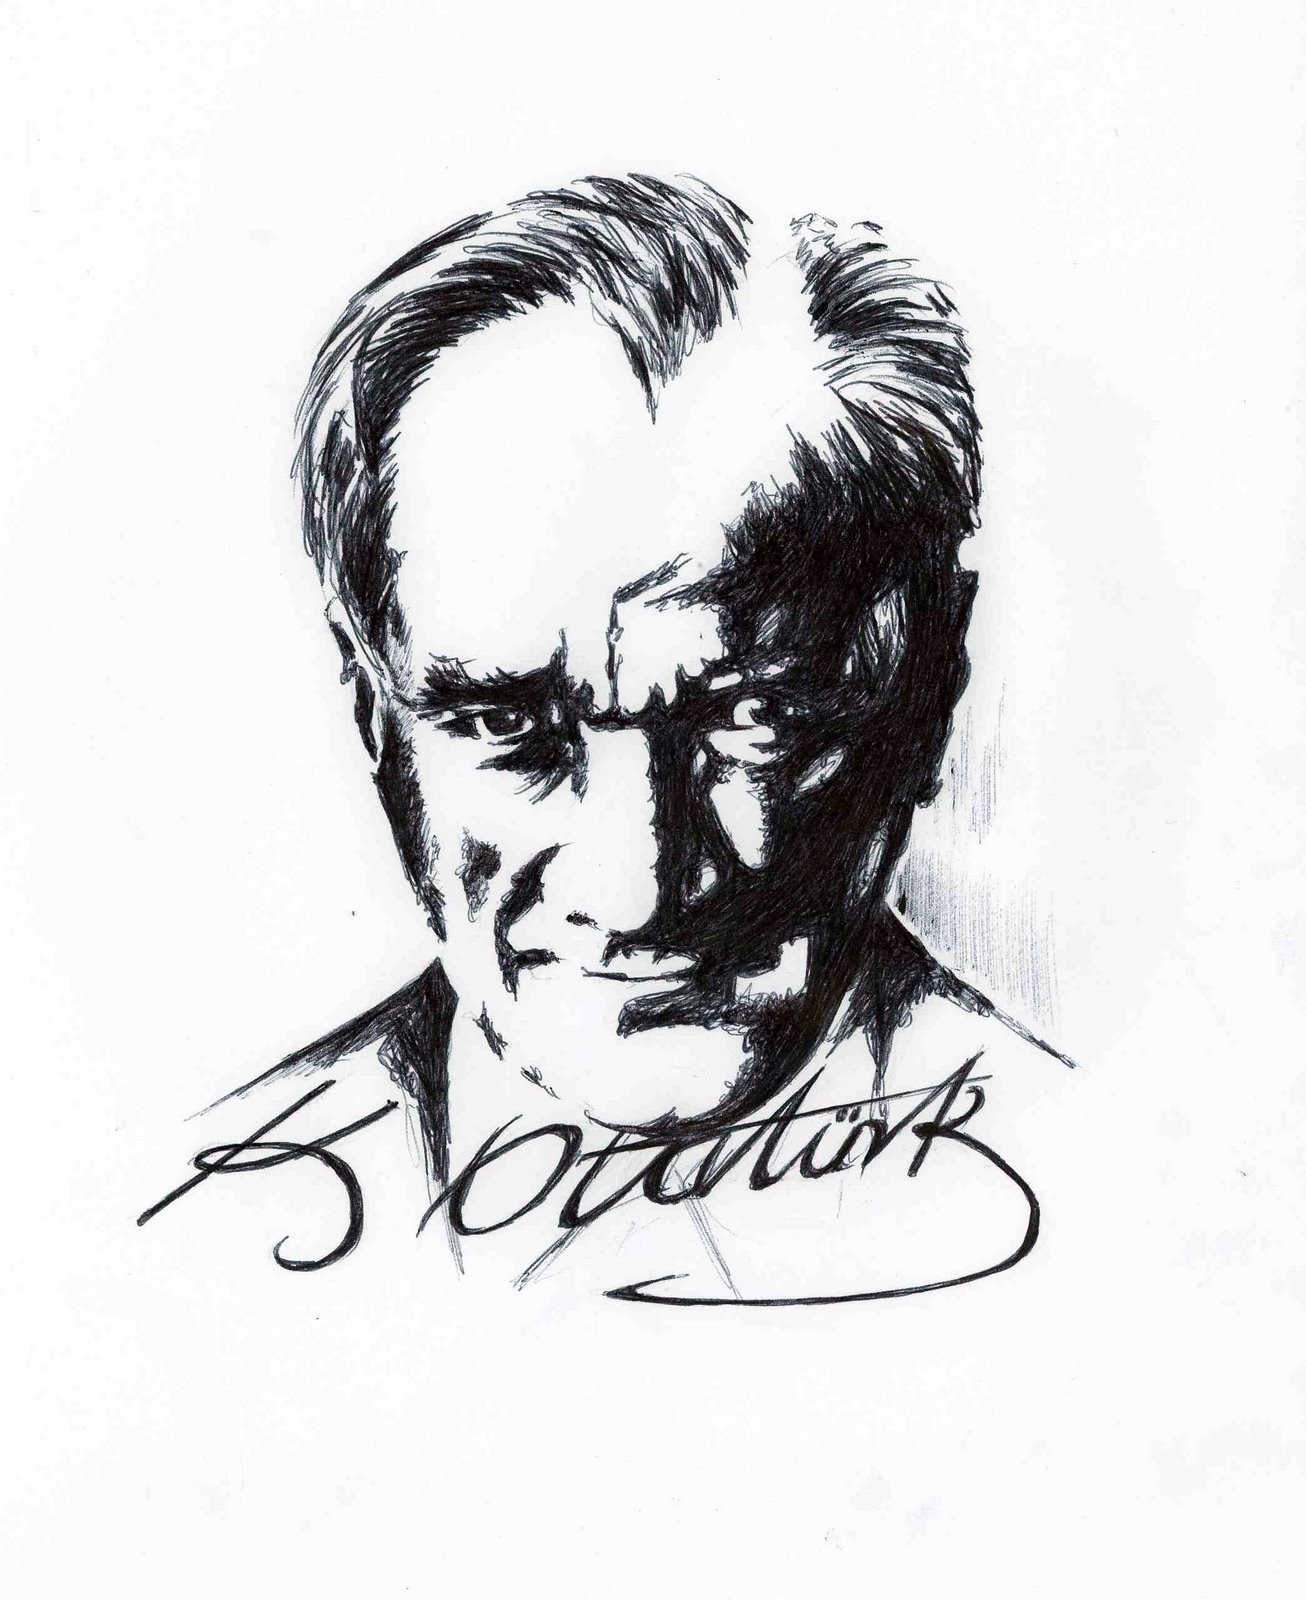 turkish signatures Ataturk HD Wallpaper